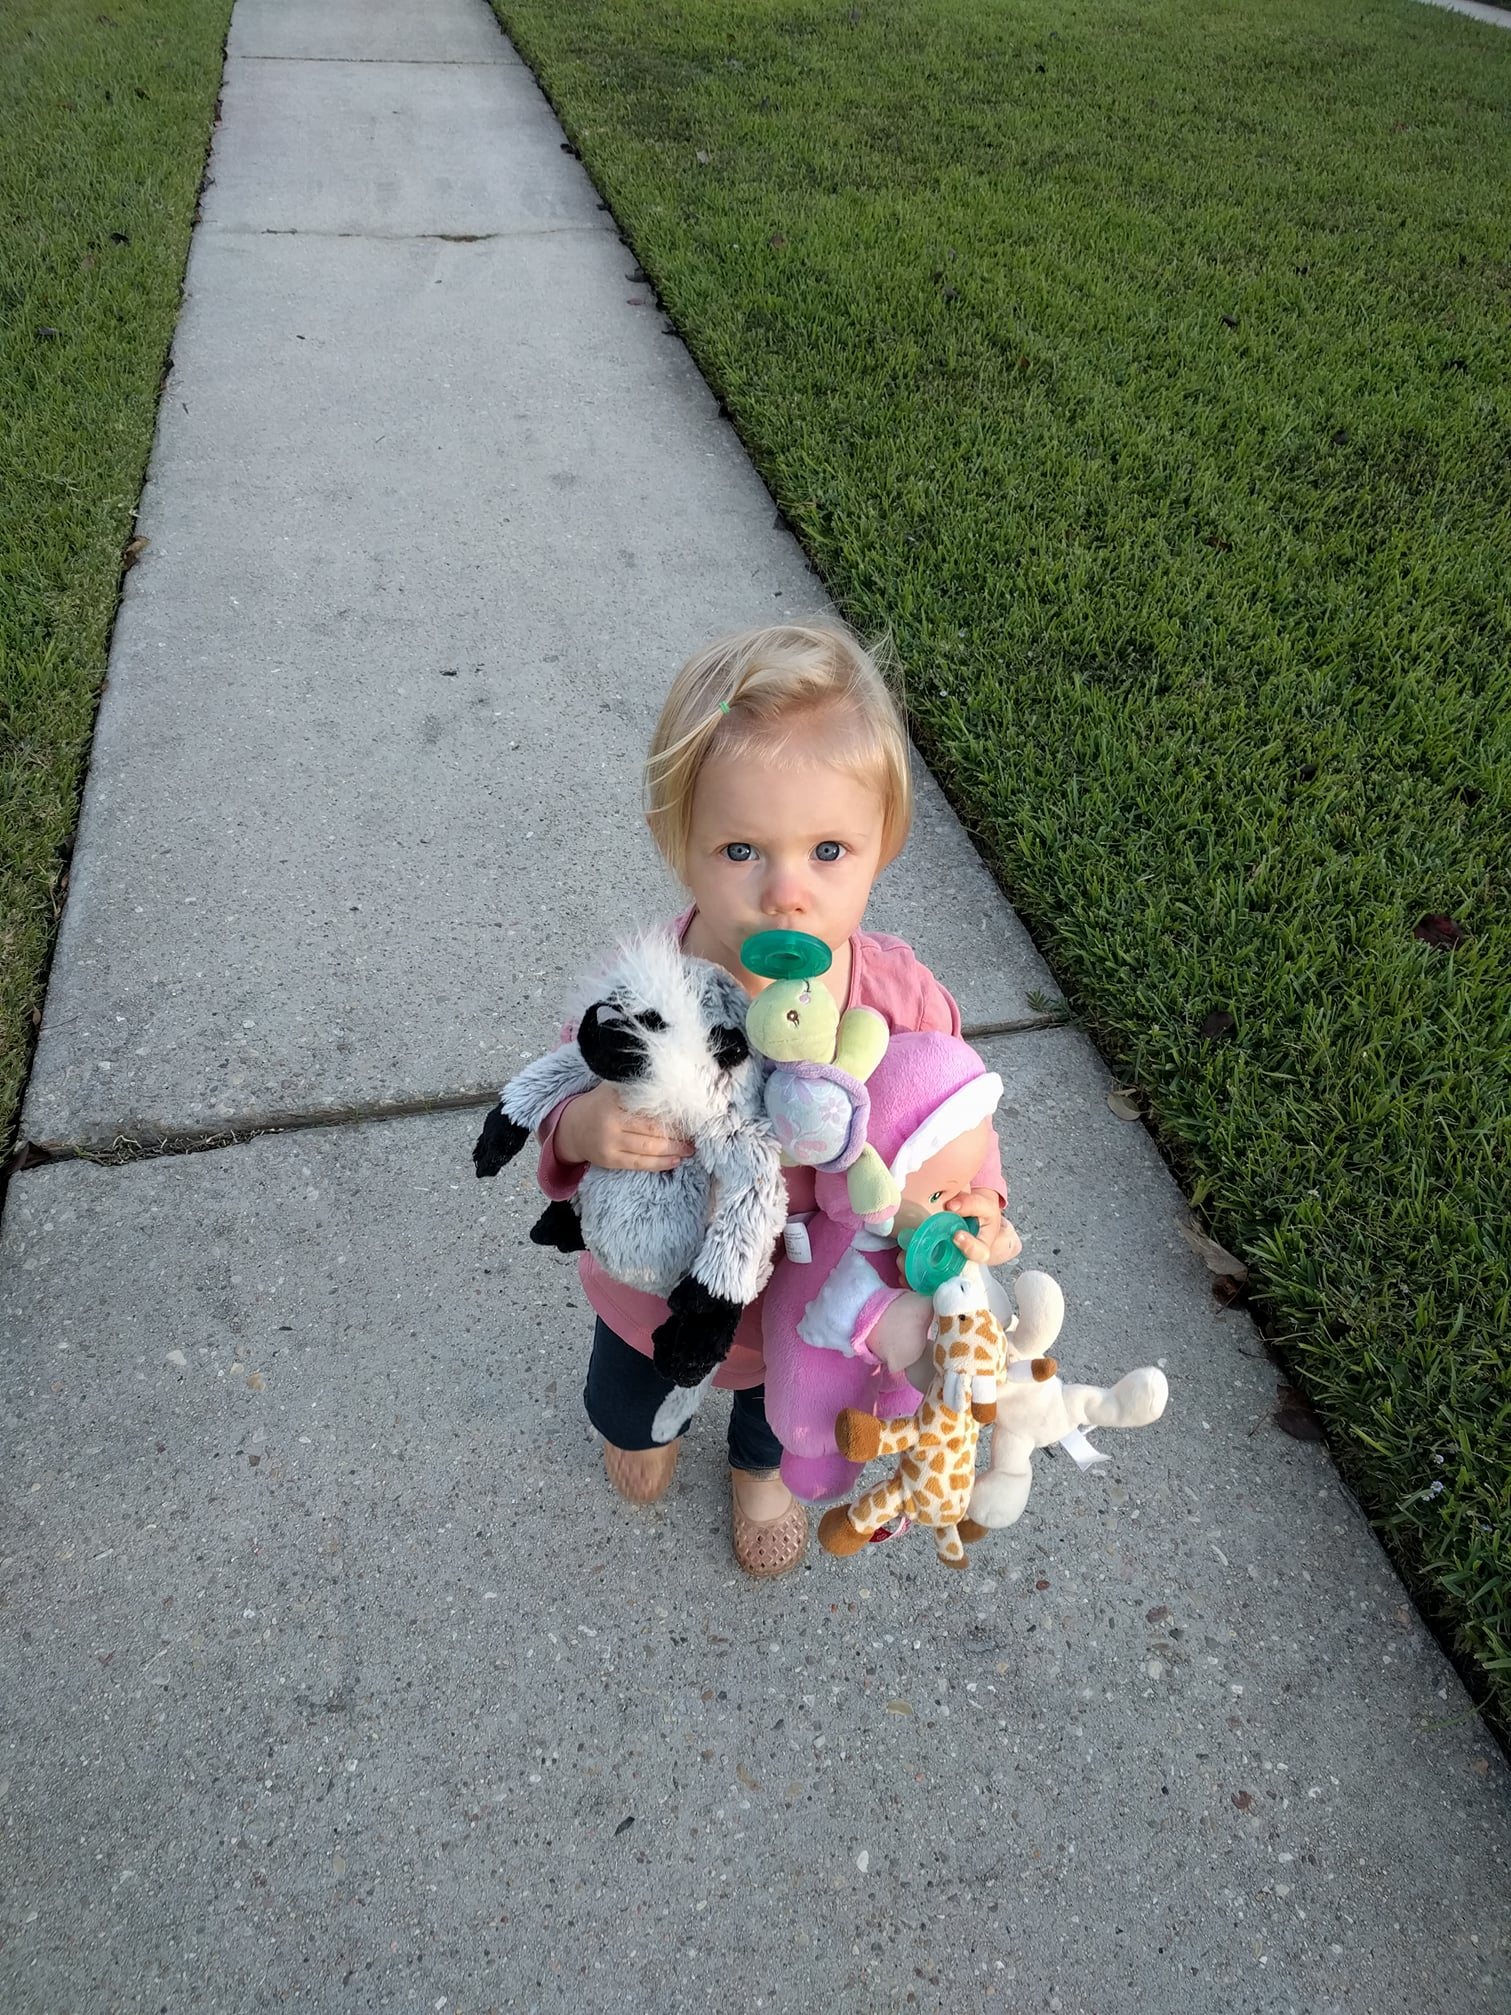 Oh, you know, just taking a walk with my mom and my five favorite stuffed animals.